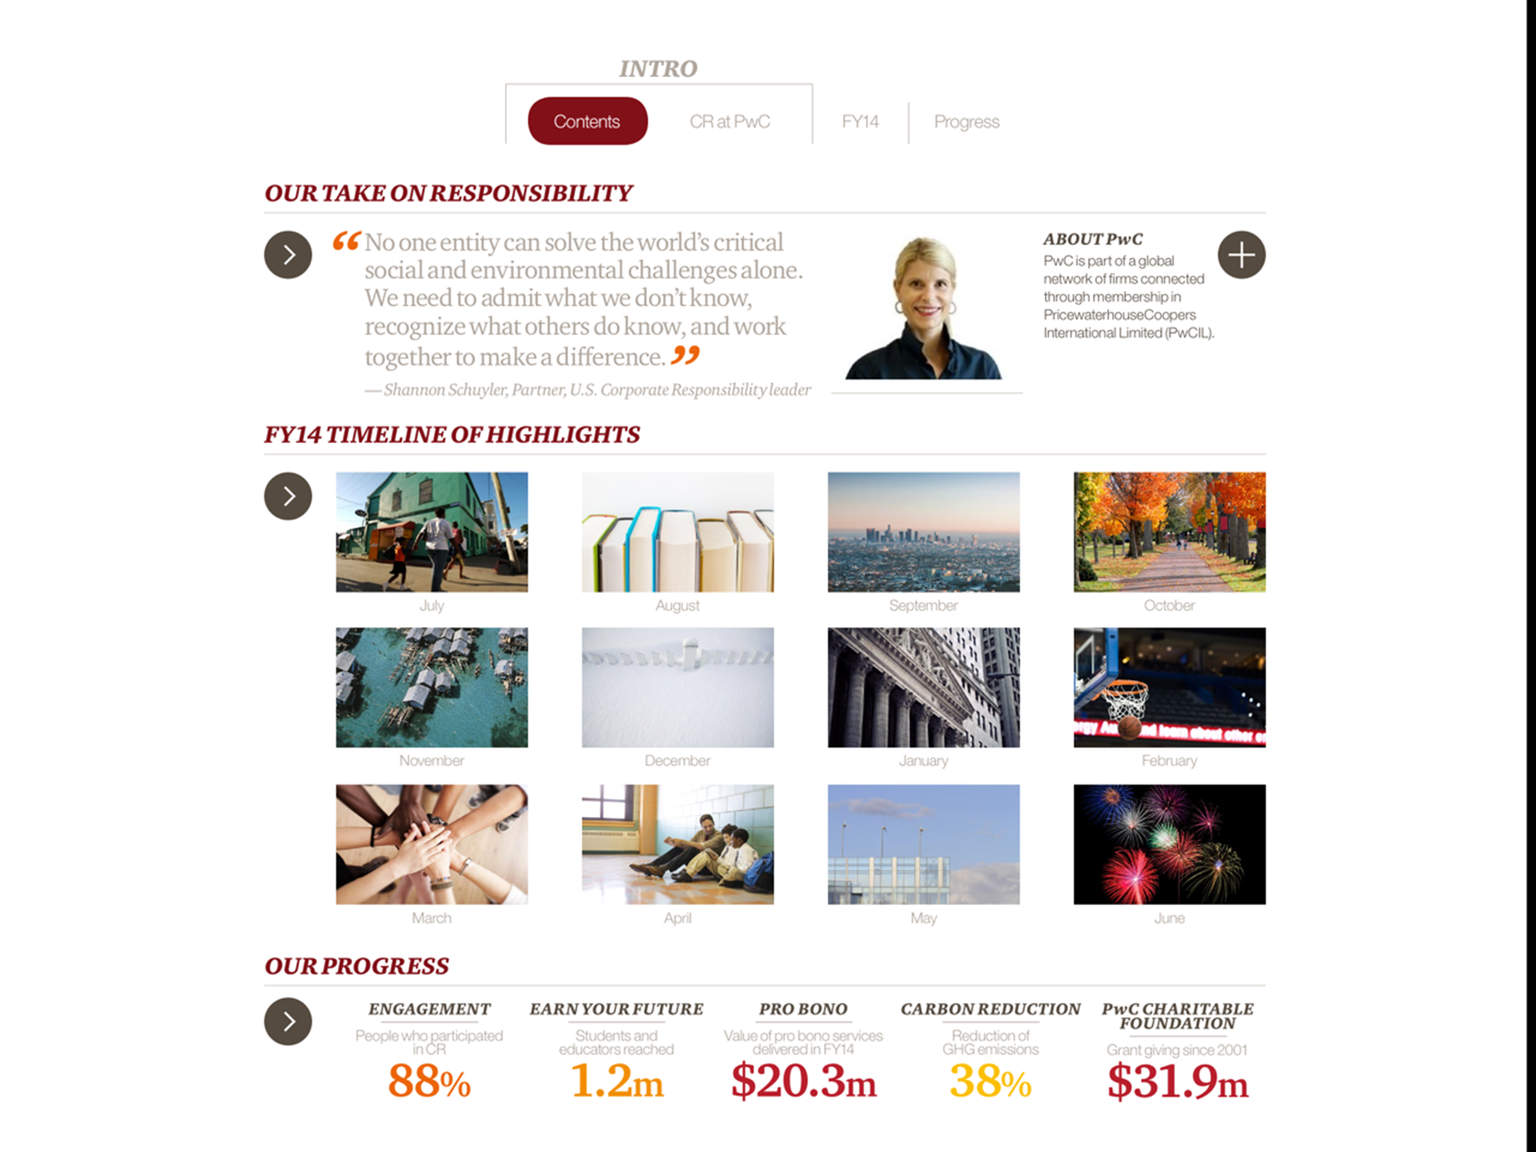 PwC U.S. Corporate Responsibility Reporting Screenshot